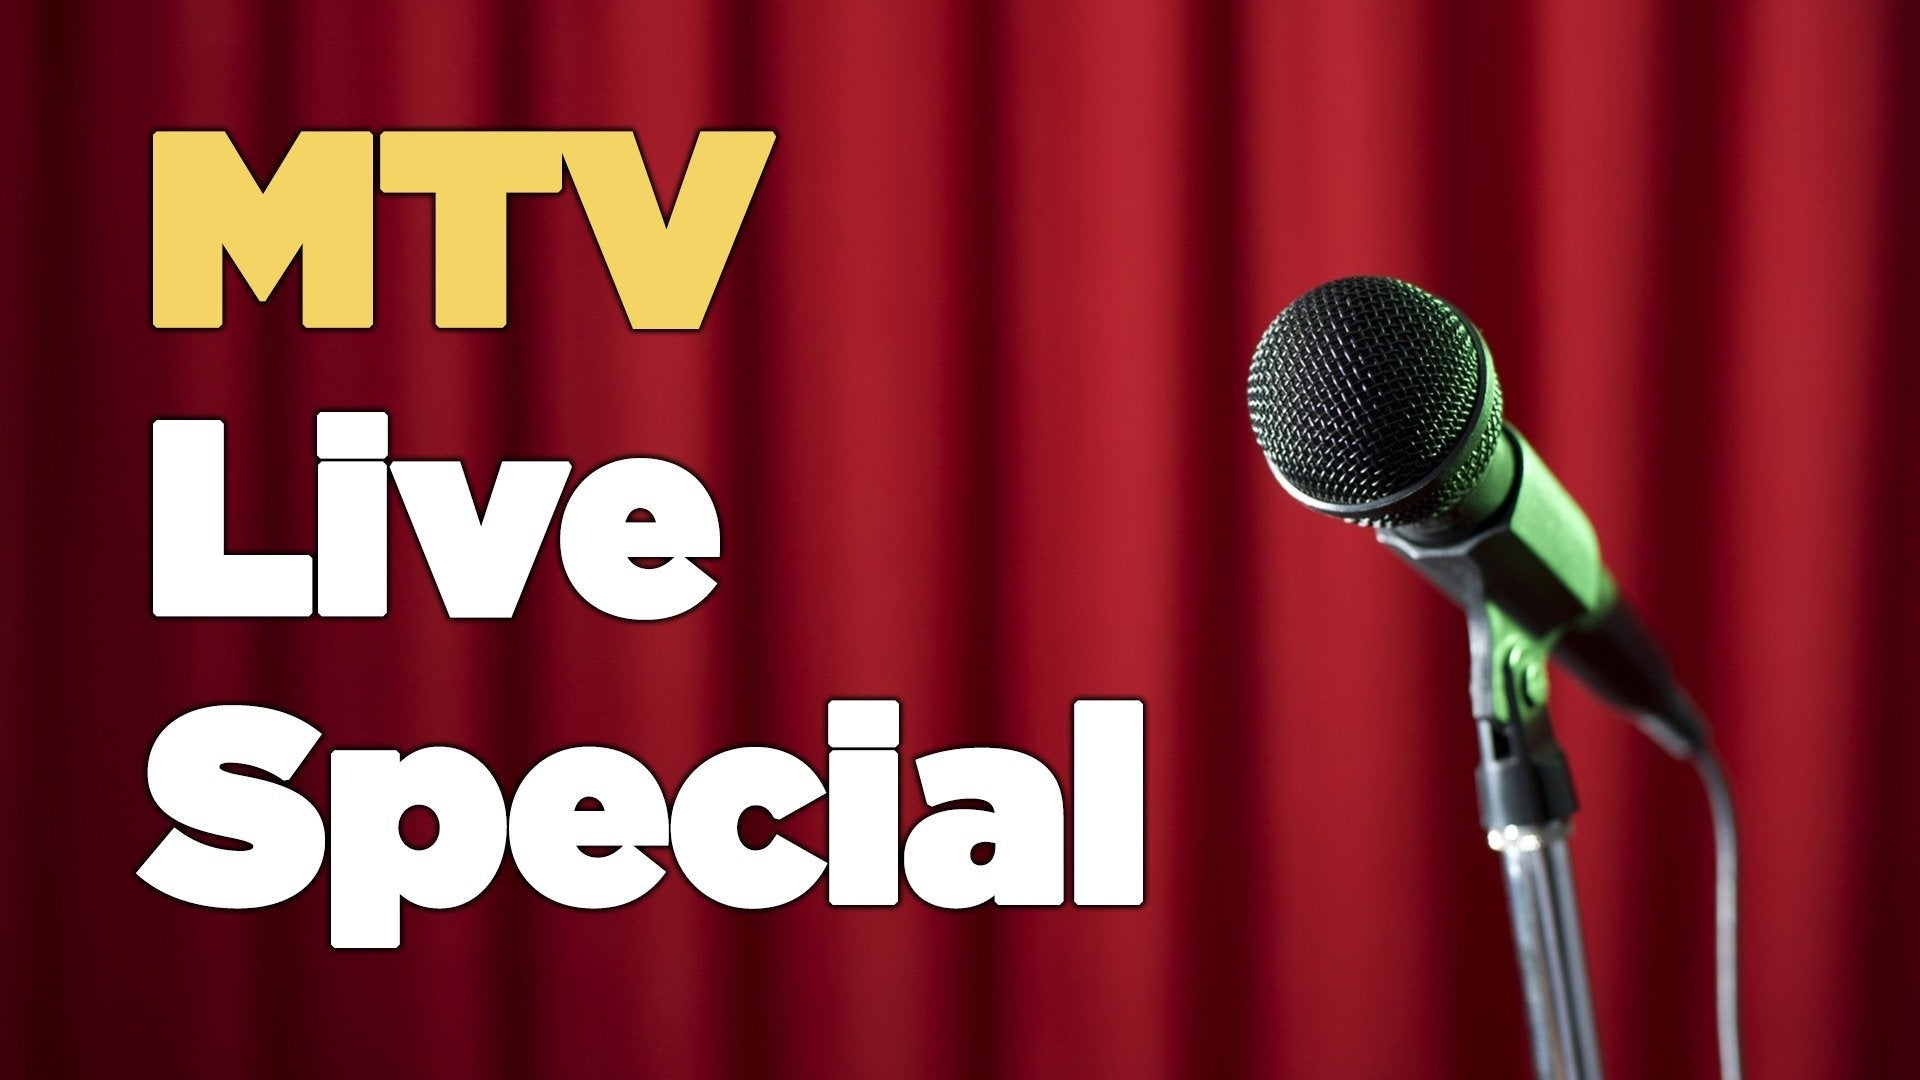 MTV Live Special